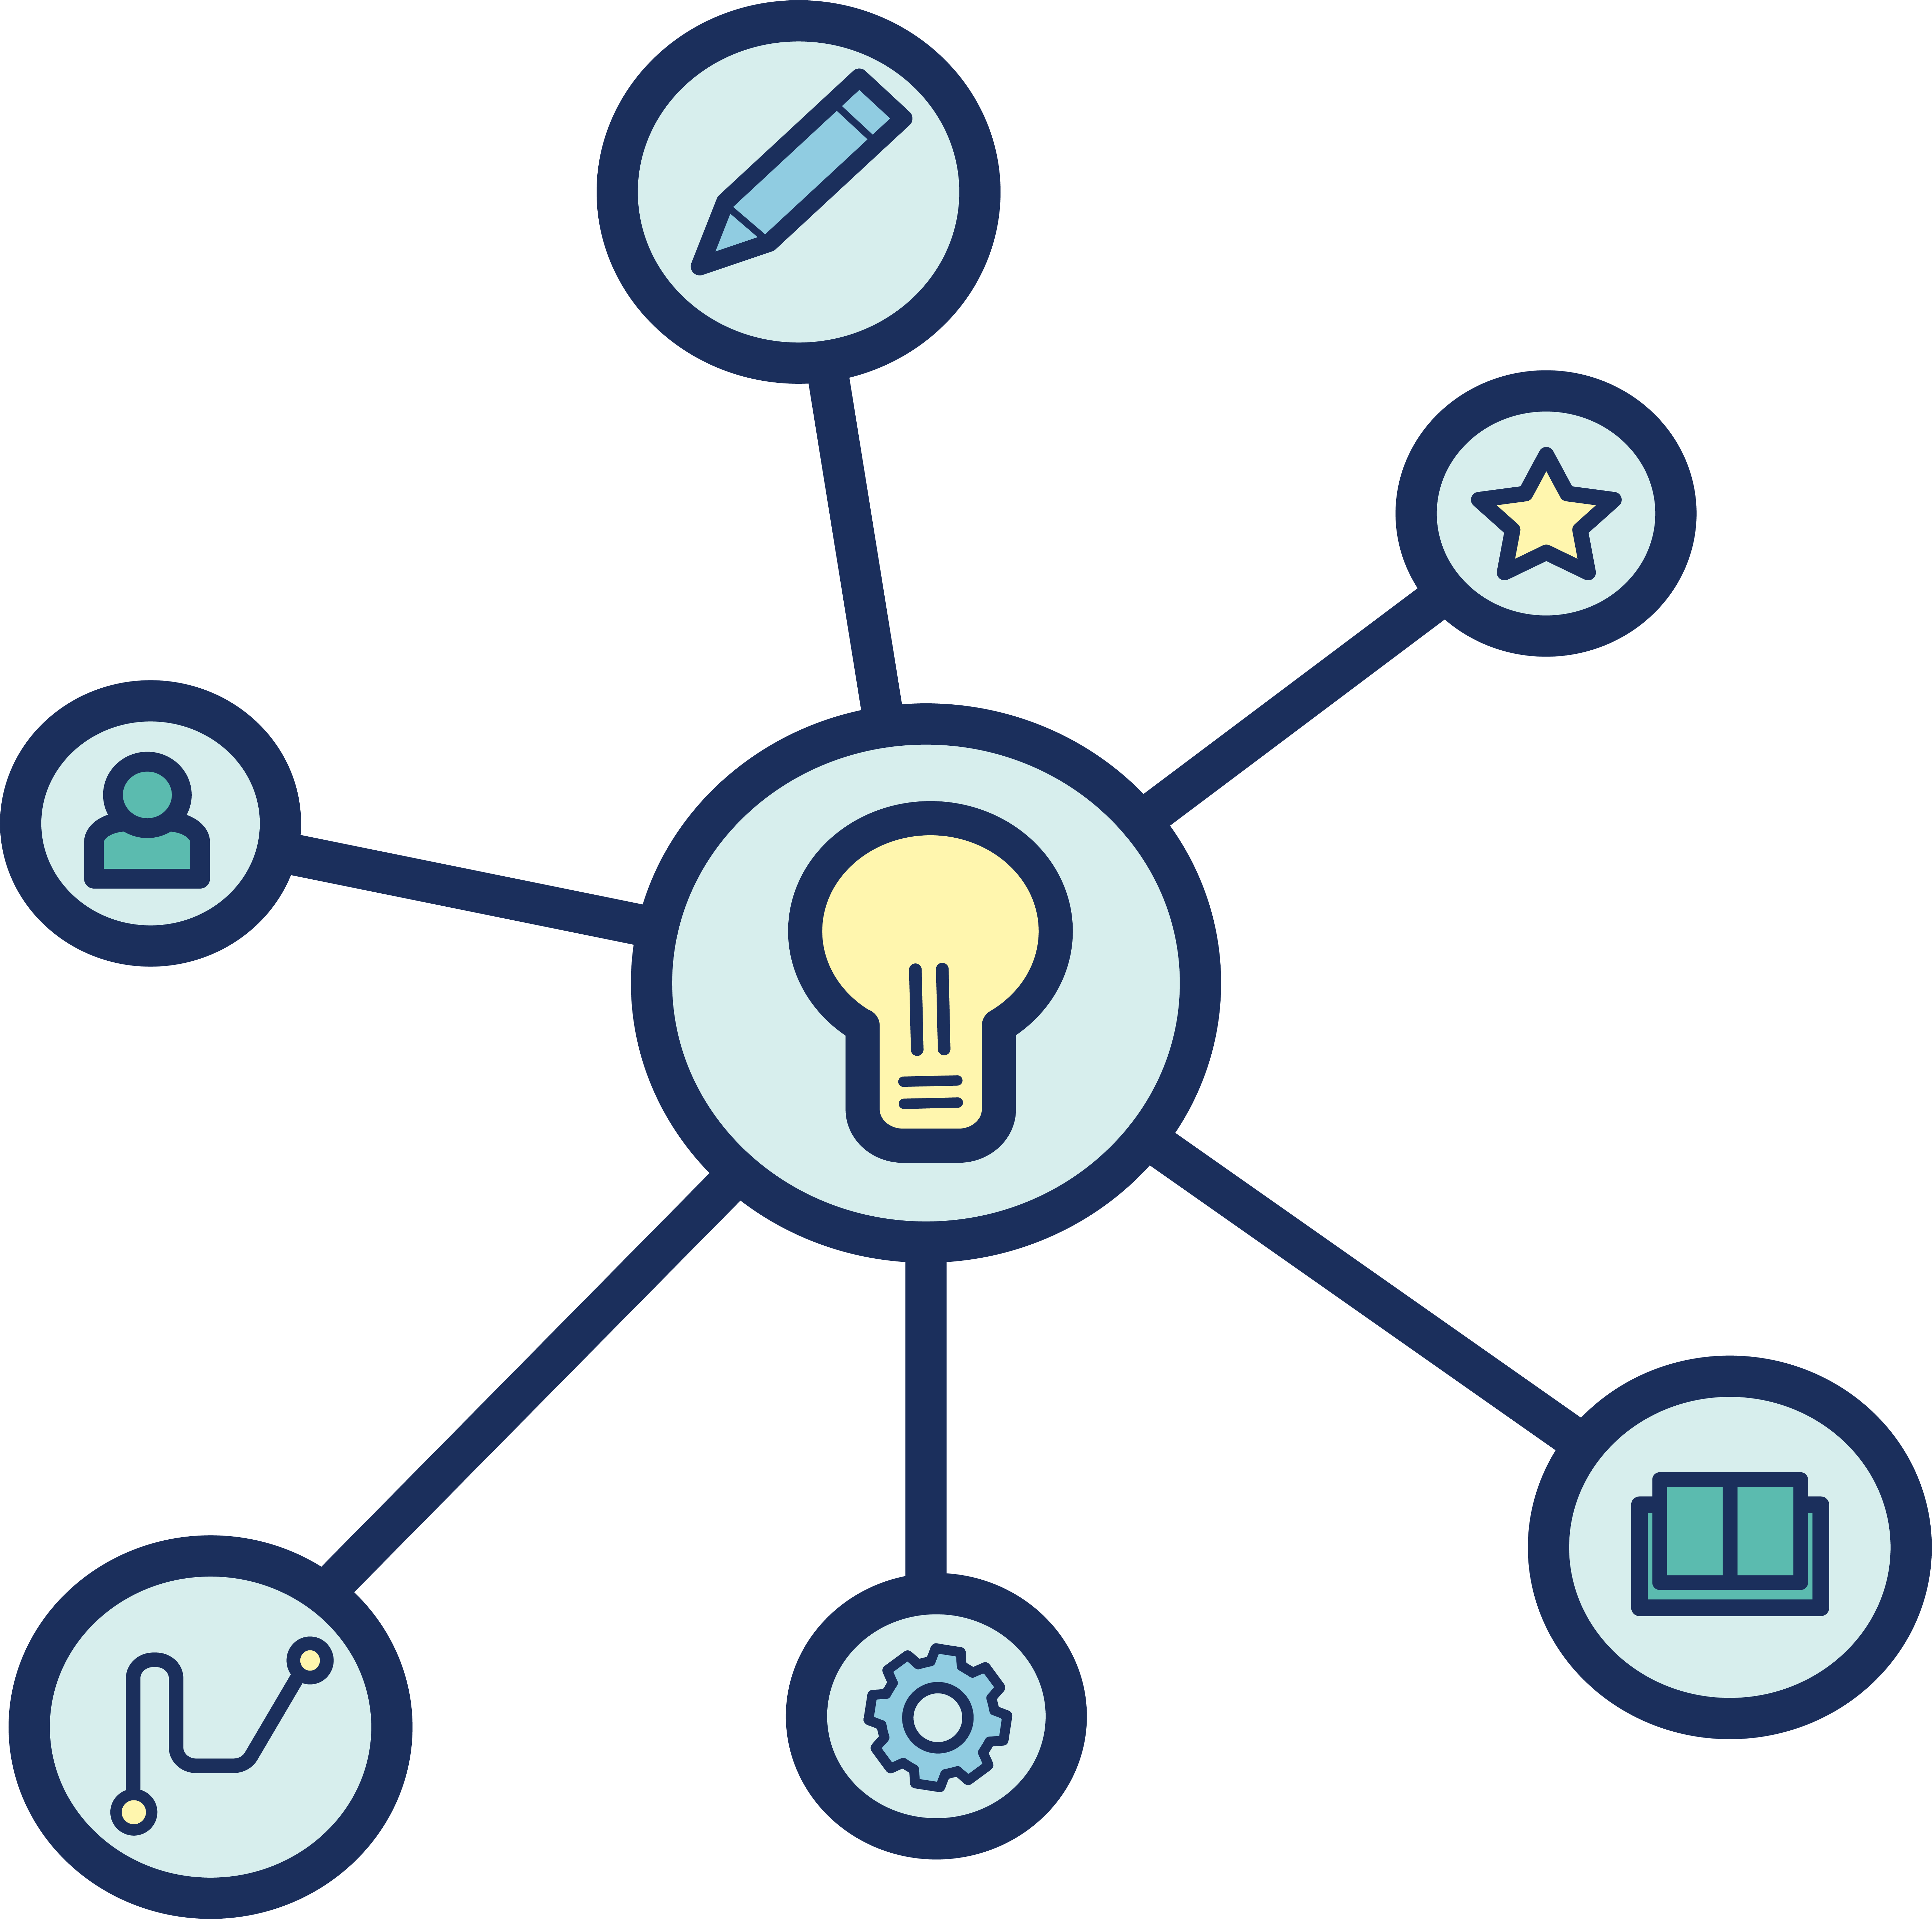 An icon representing research, with a light bulb in the centre that is reaching out to icons of books, gears, pencils, and elements of the student experiences